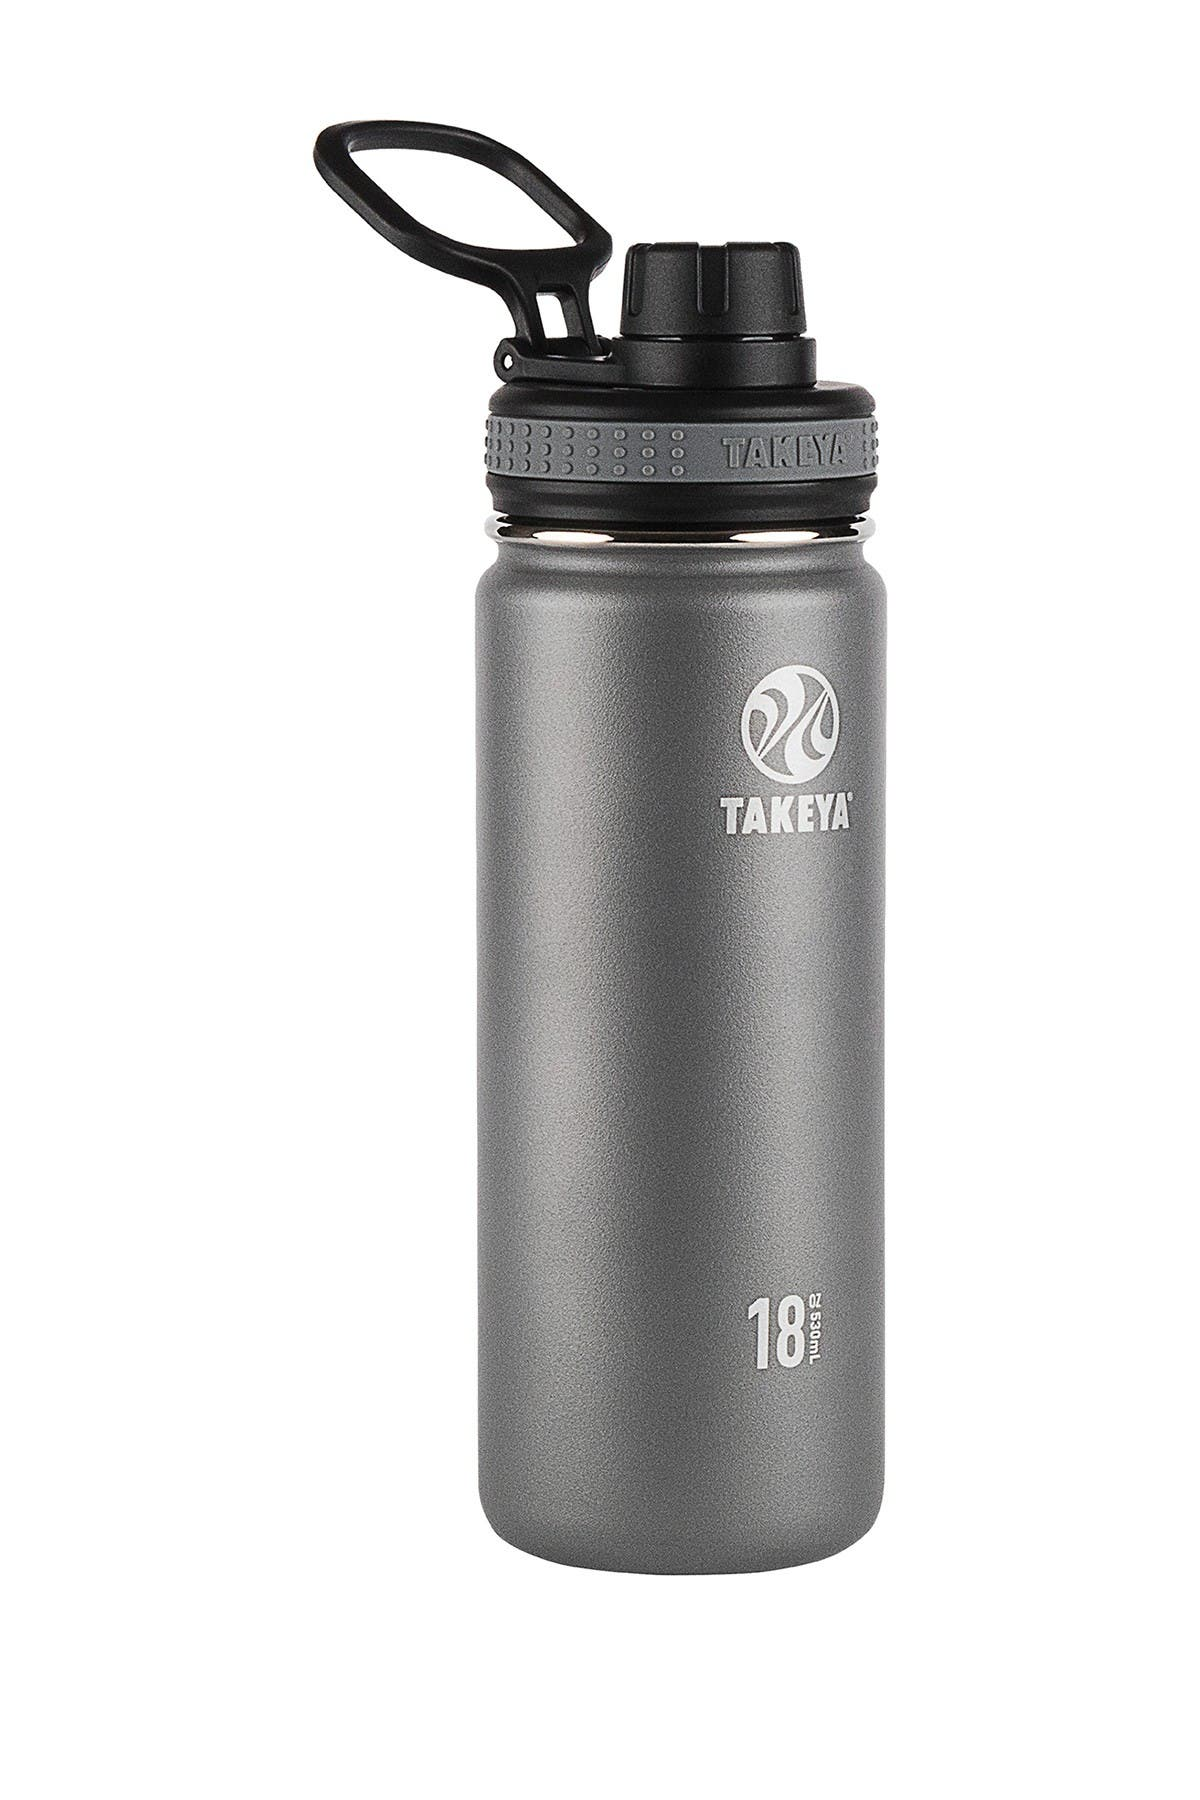 Image of Takeya Graphite Originals Insulated Spout Lid 18oz. Stainless Steel Bottle